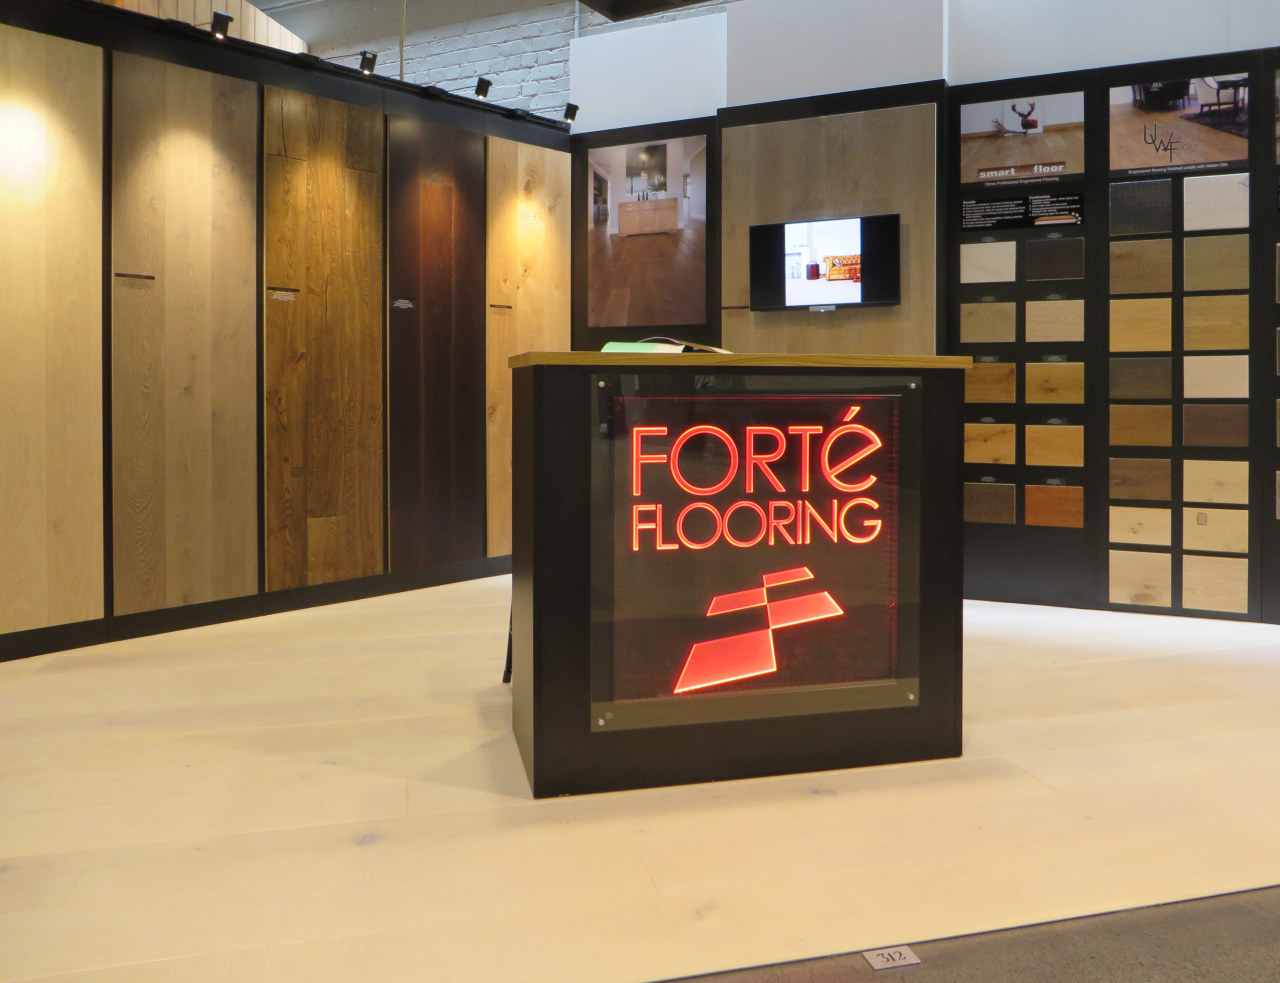 A wide variety of interior decor solutions is display case, exhibition, flooring, orange, black